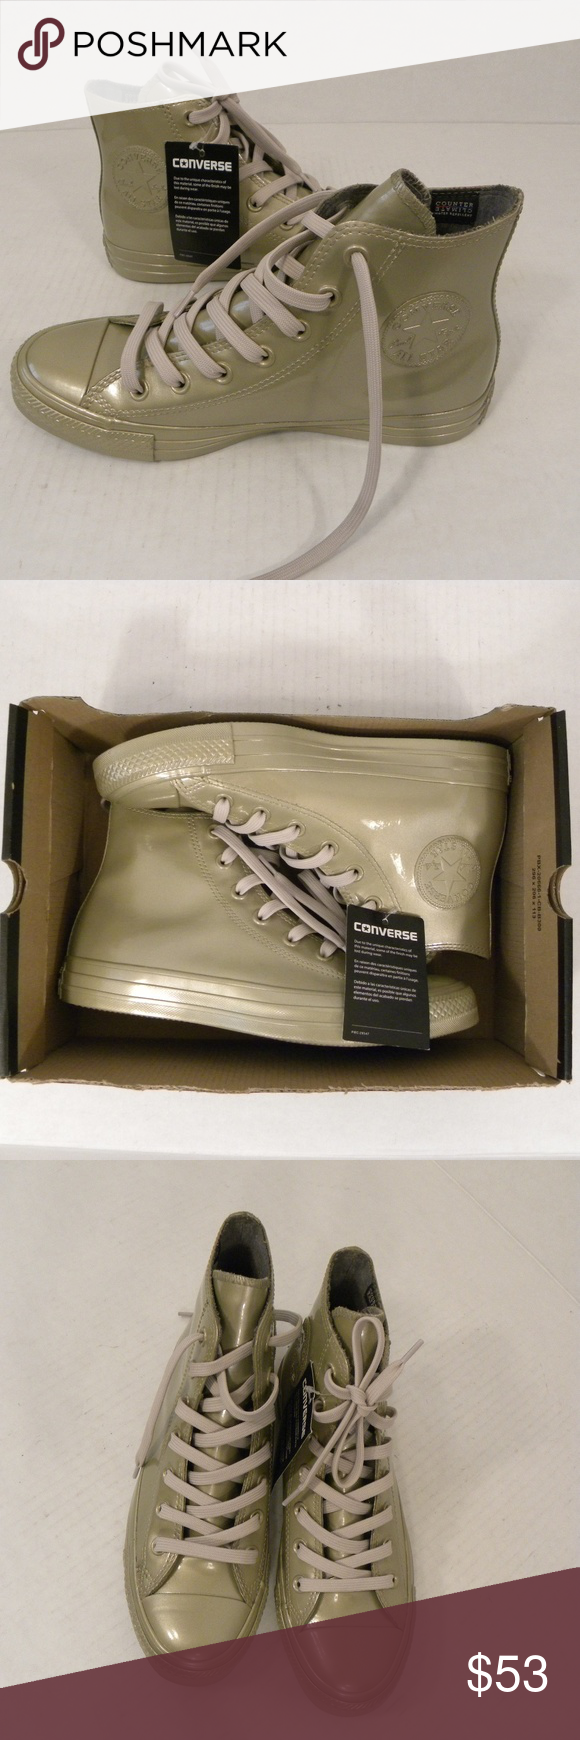 5f6636f8abd91a Converse Chuck Taylor Metallic Rubber Sz 8 M Gold Converse Chuck Taylor All  Star High Top Shoes Model  553269C Metallic Rubber Light Gold Climate  Counter ...